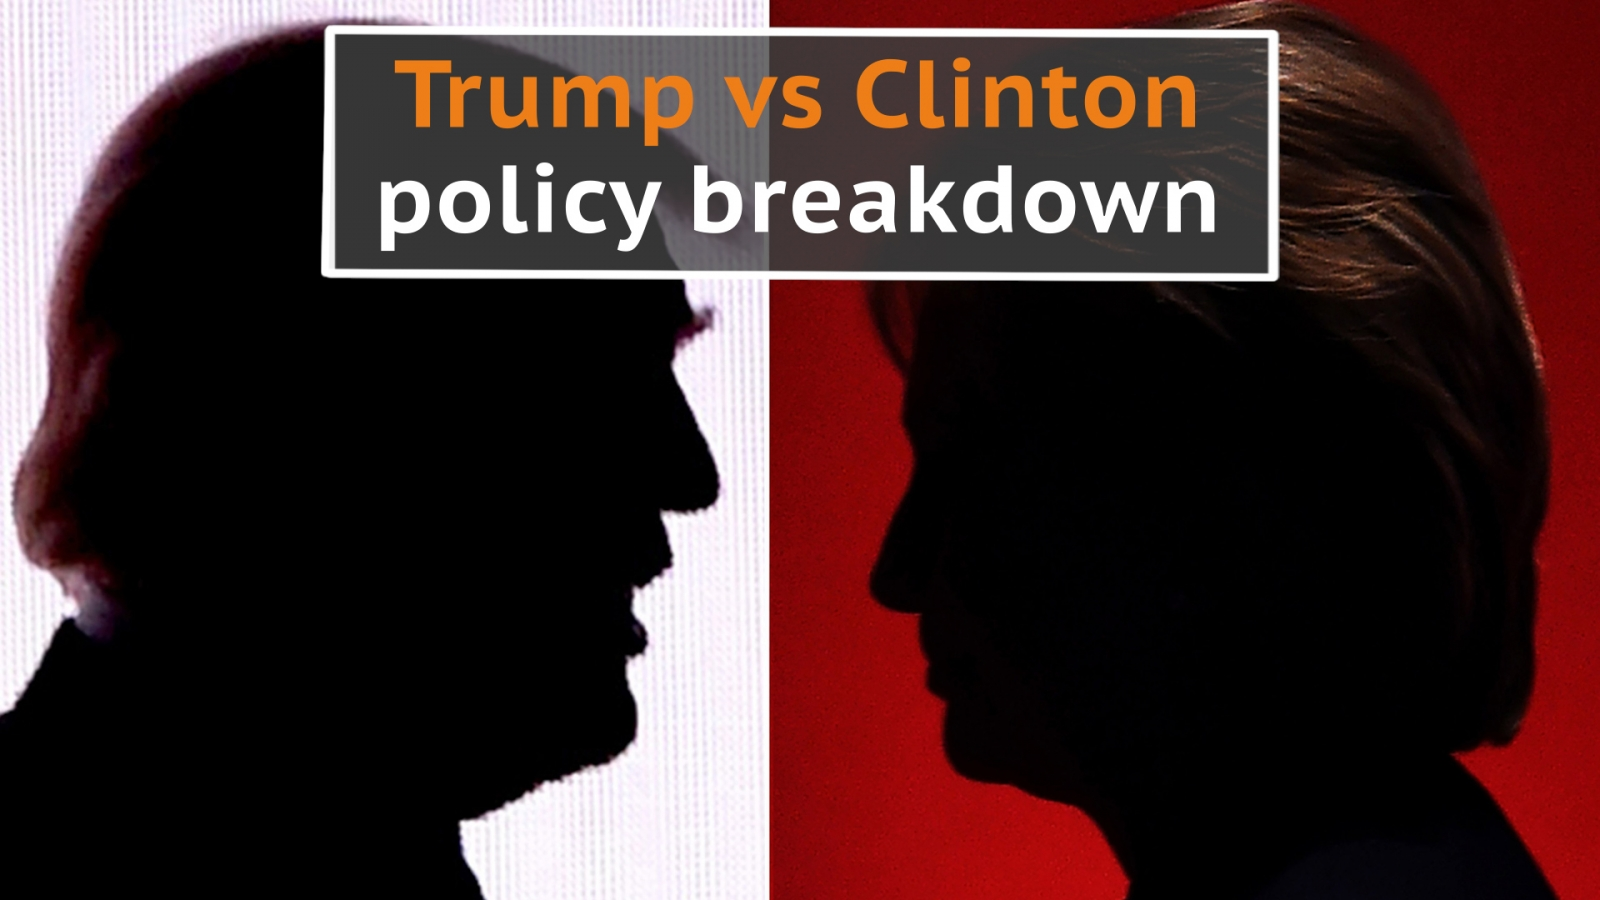 Trump vs Clinton policy breakdown